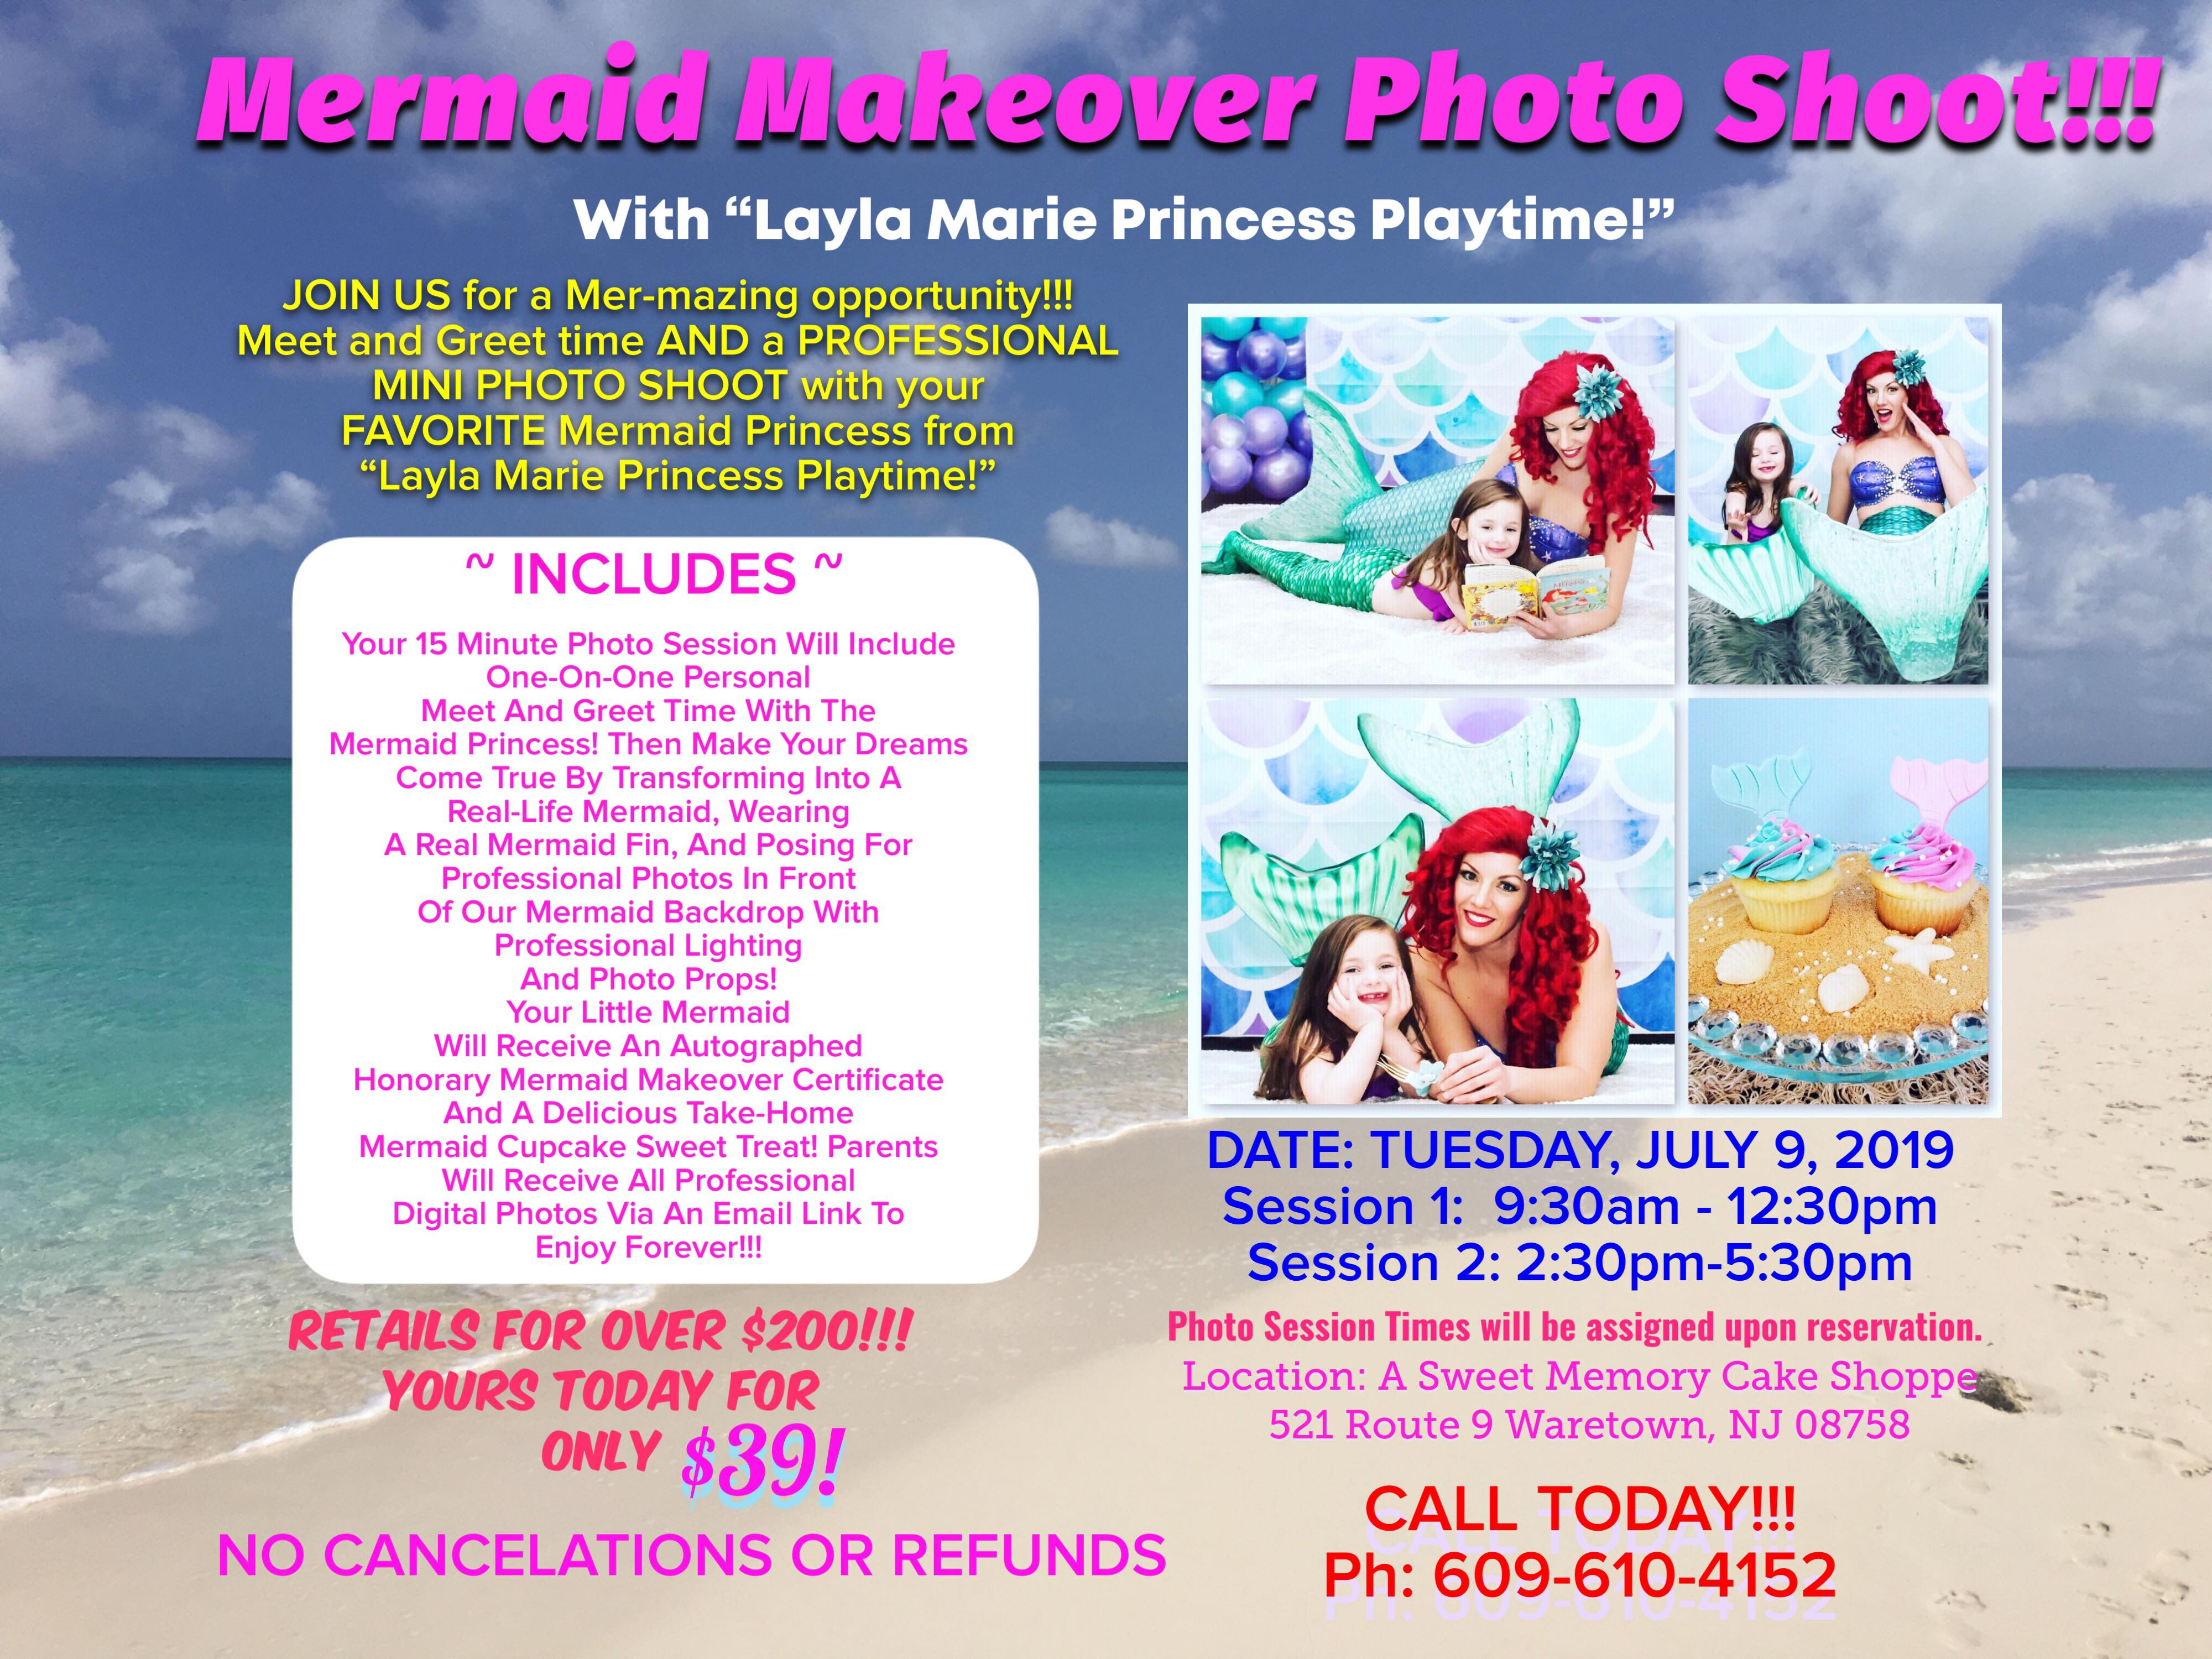 Mermaid Makeover Photo Shoot Flyer July 9, 2019